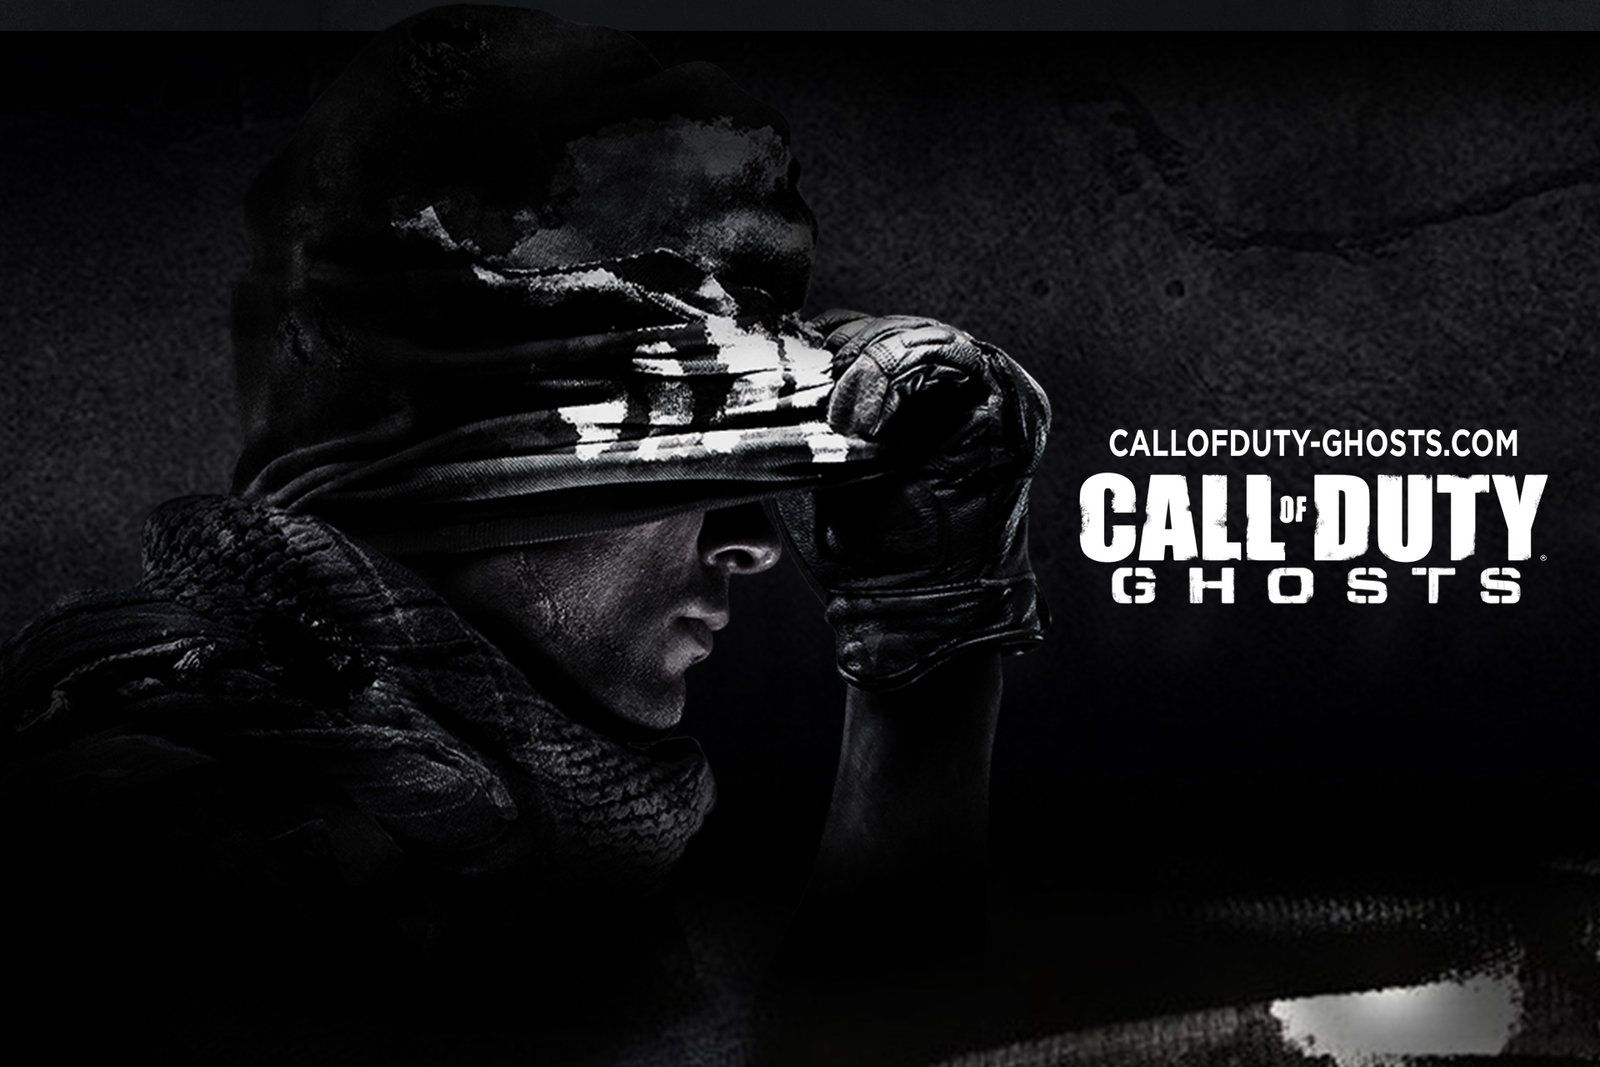 Call Of Duty Ghosts Android Wallpaper Free Download 1600x1067